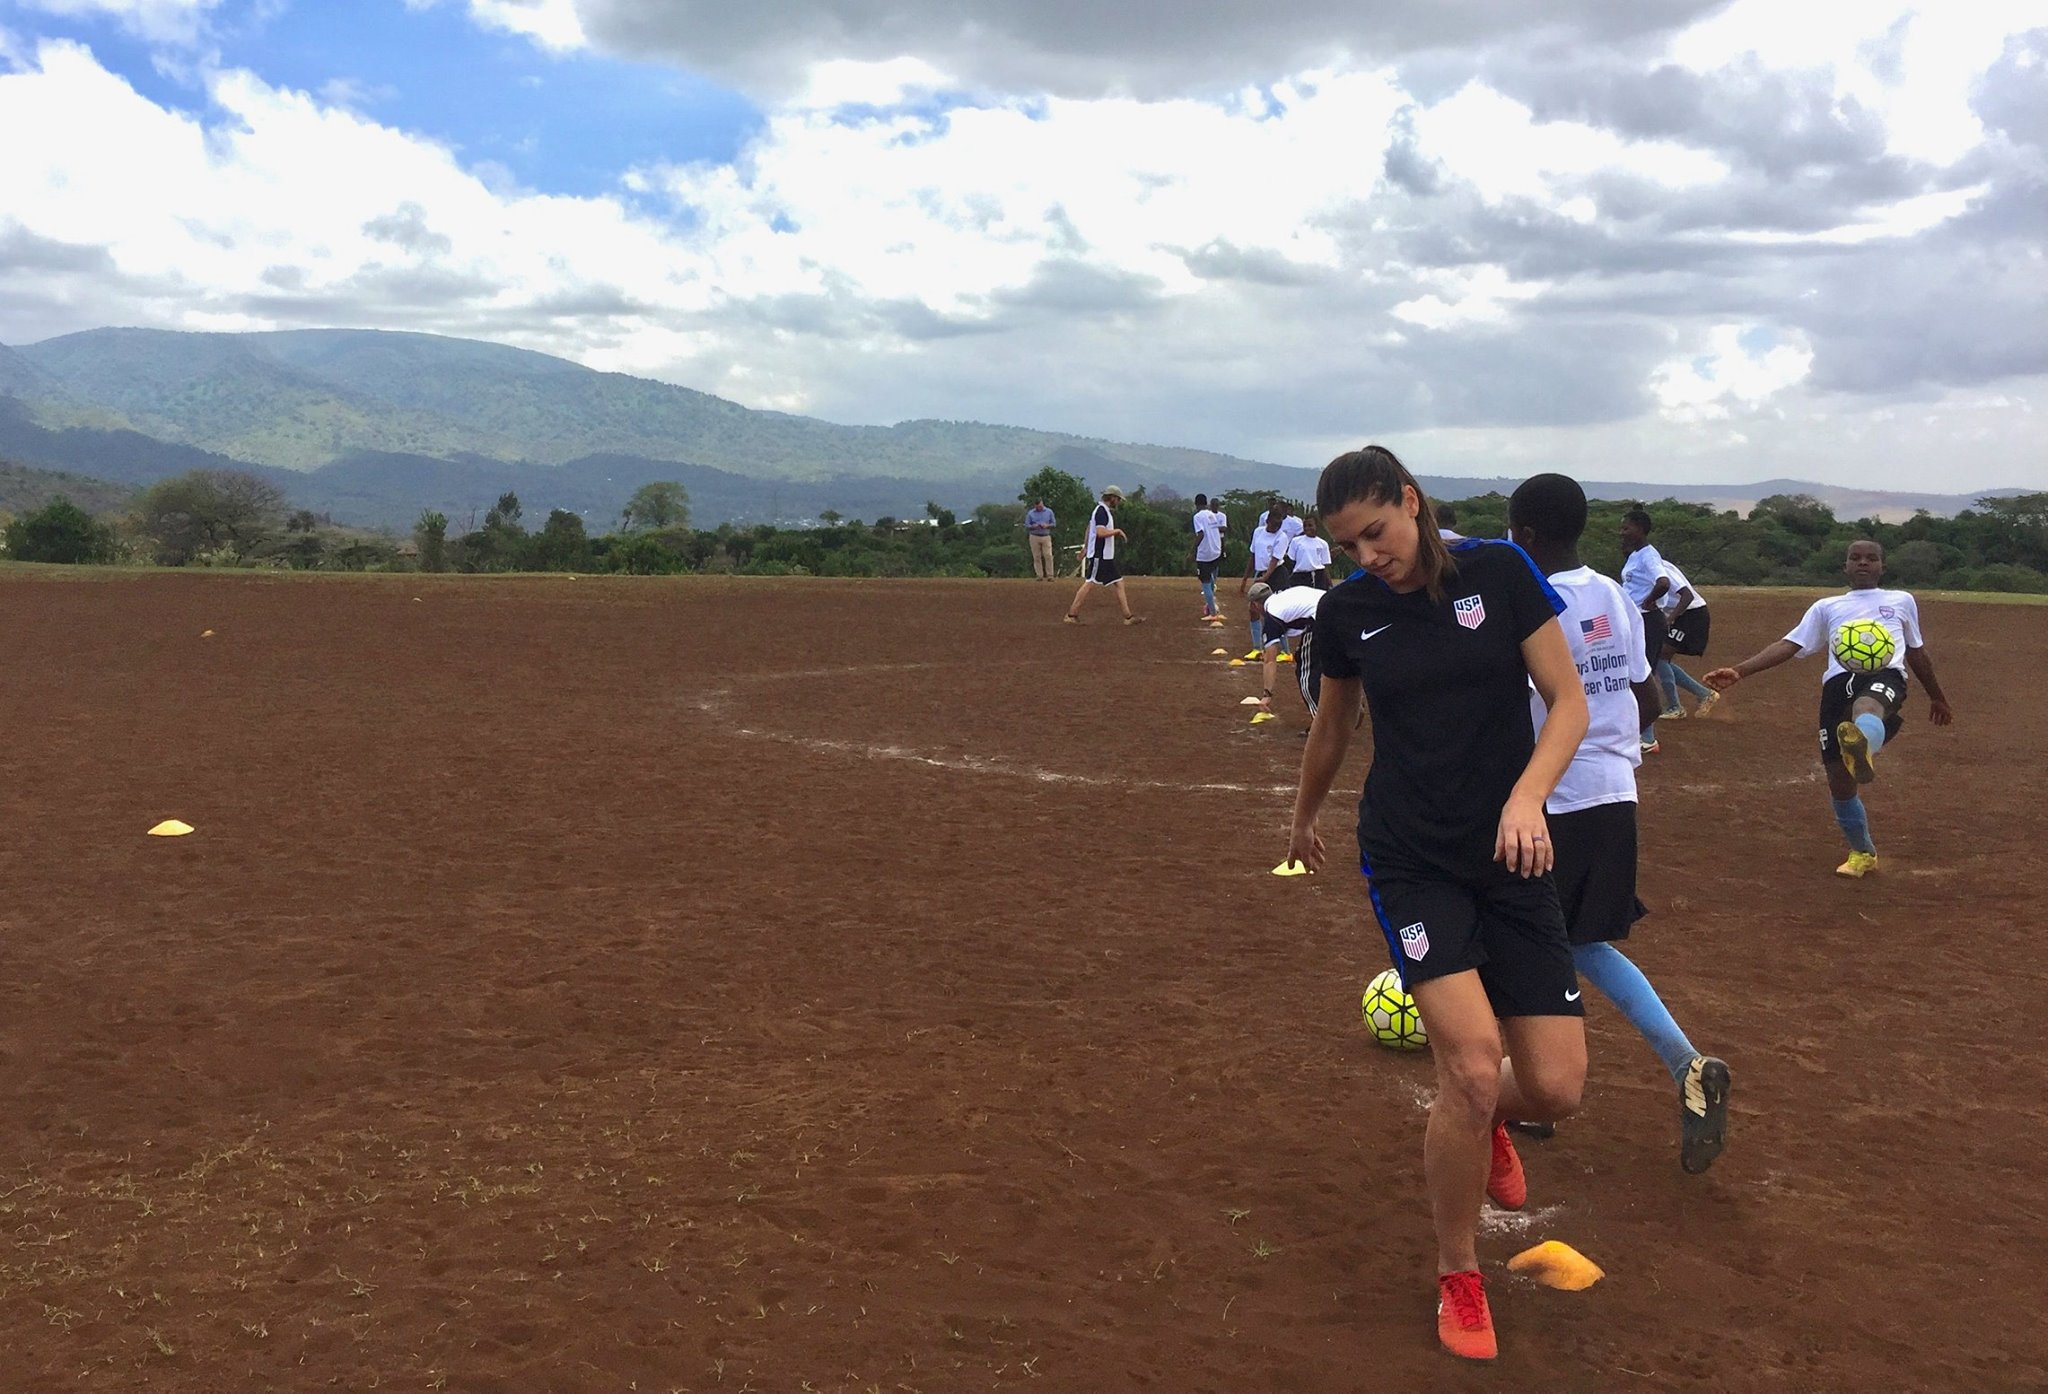 Sports Envoys and U.S. Women's National Team member, Alex Morgan leads soccer drills in Tanzania.  2017.